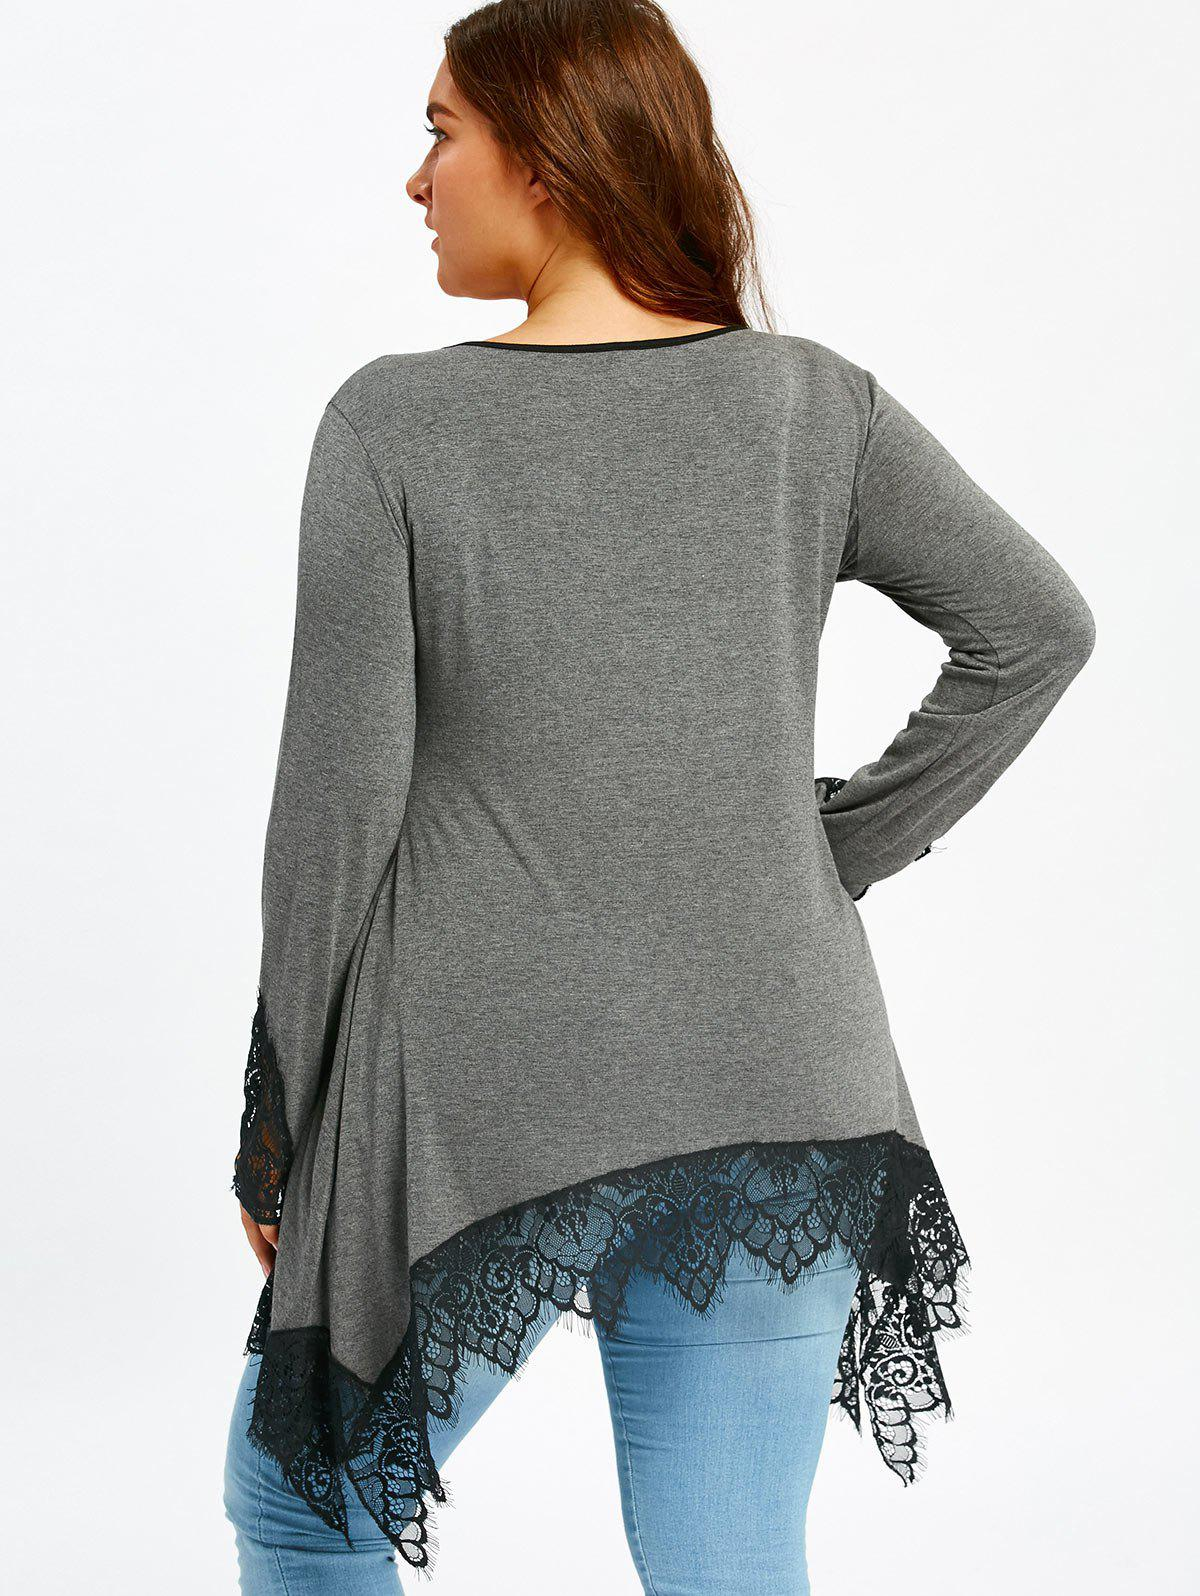 Plus Size Lace Trim Tunic Sharkbite T-shirt - GRAY 3XL